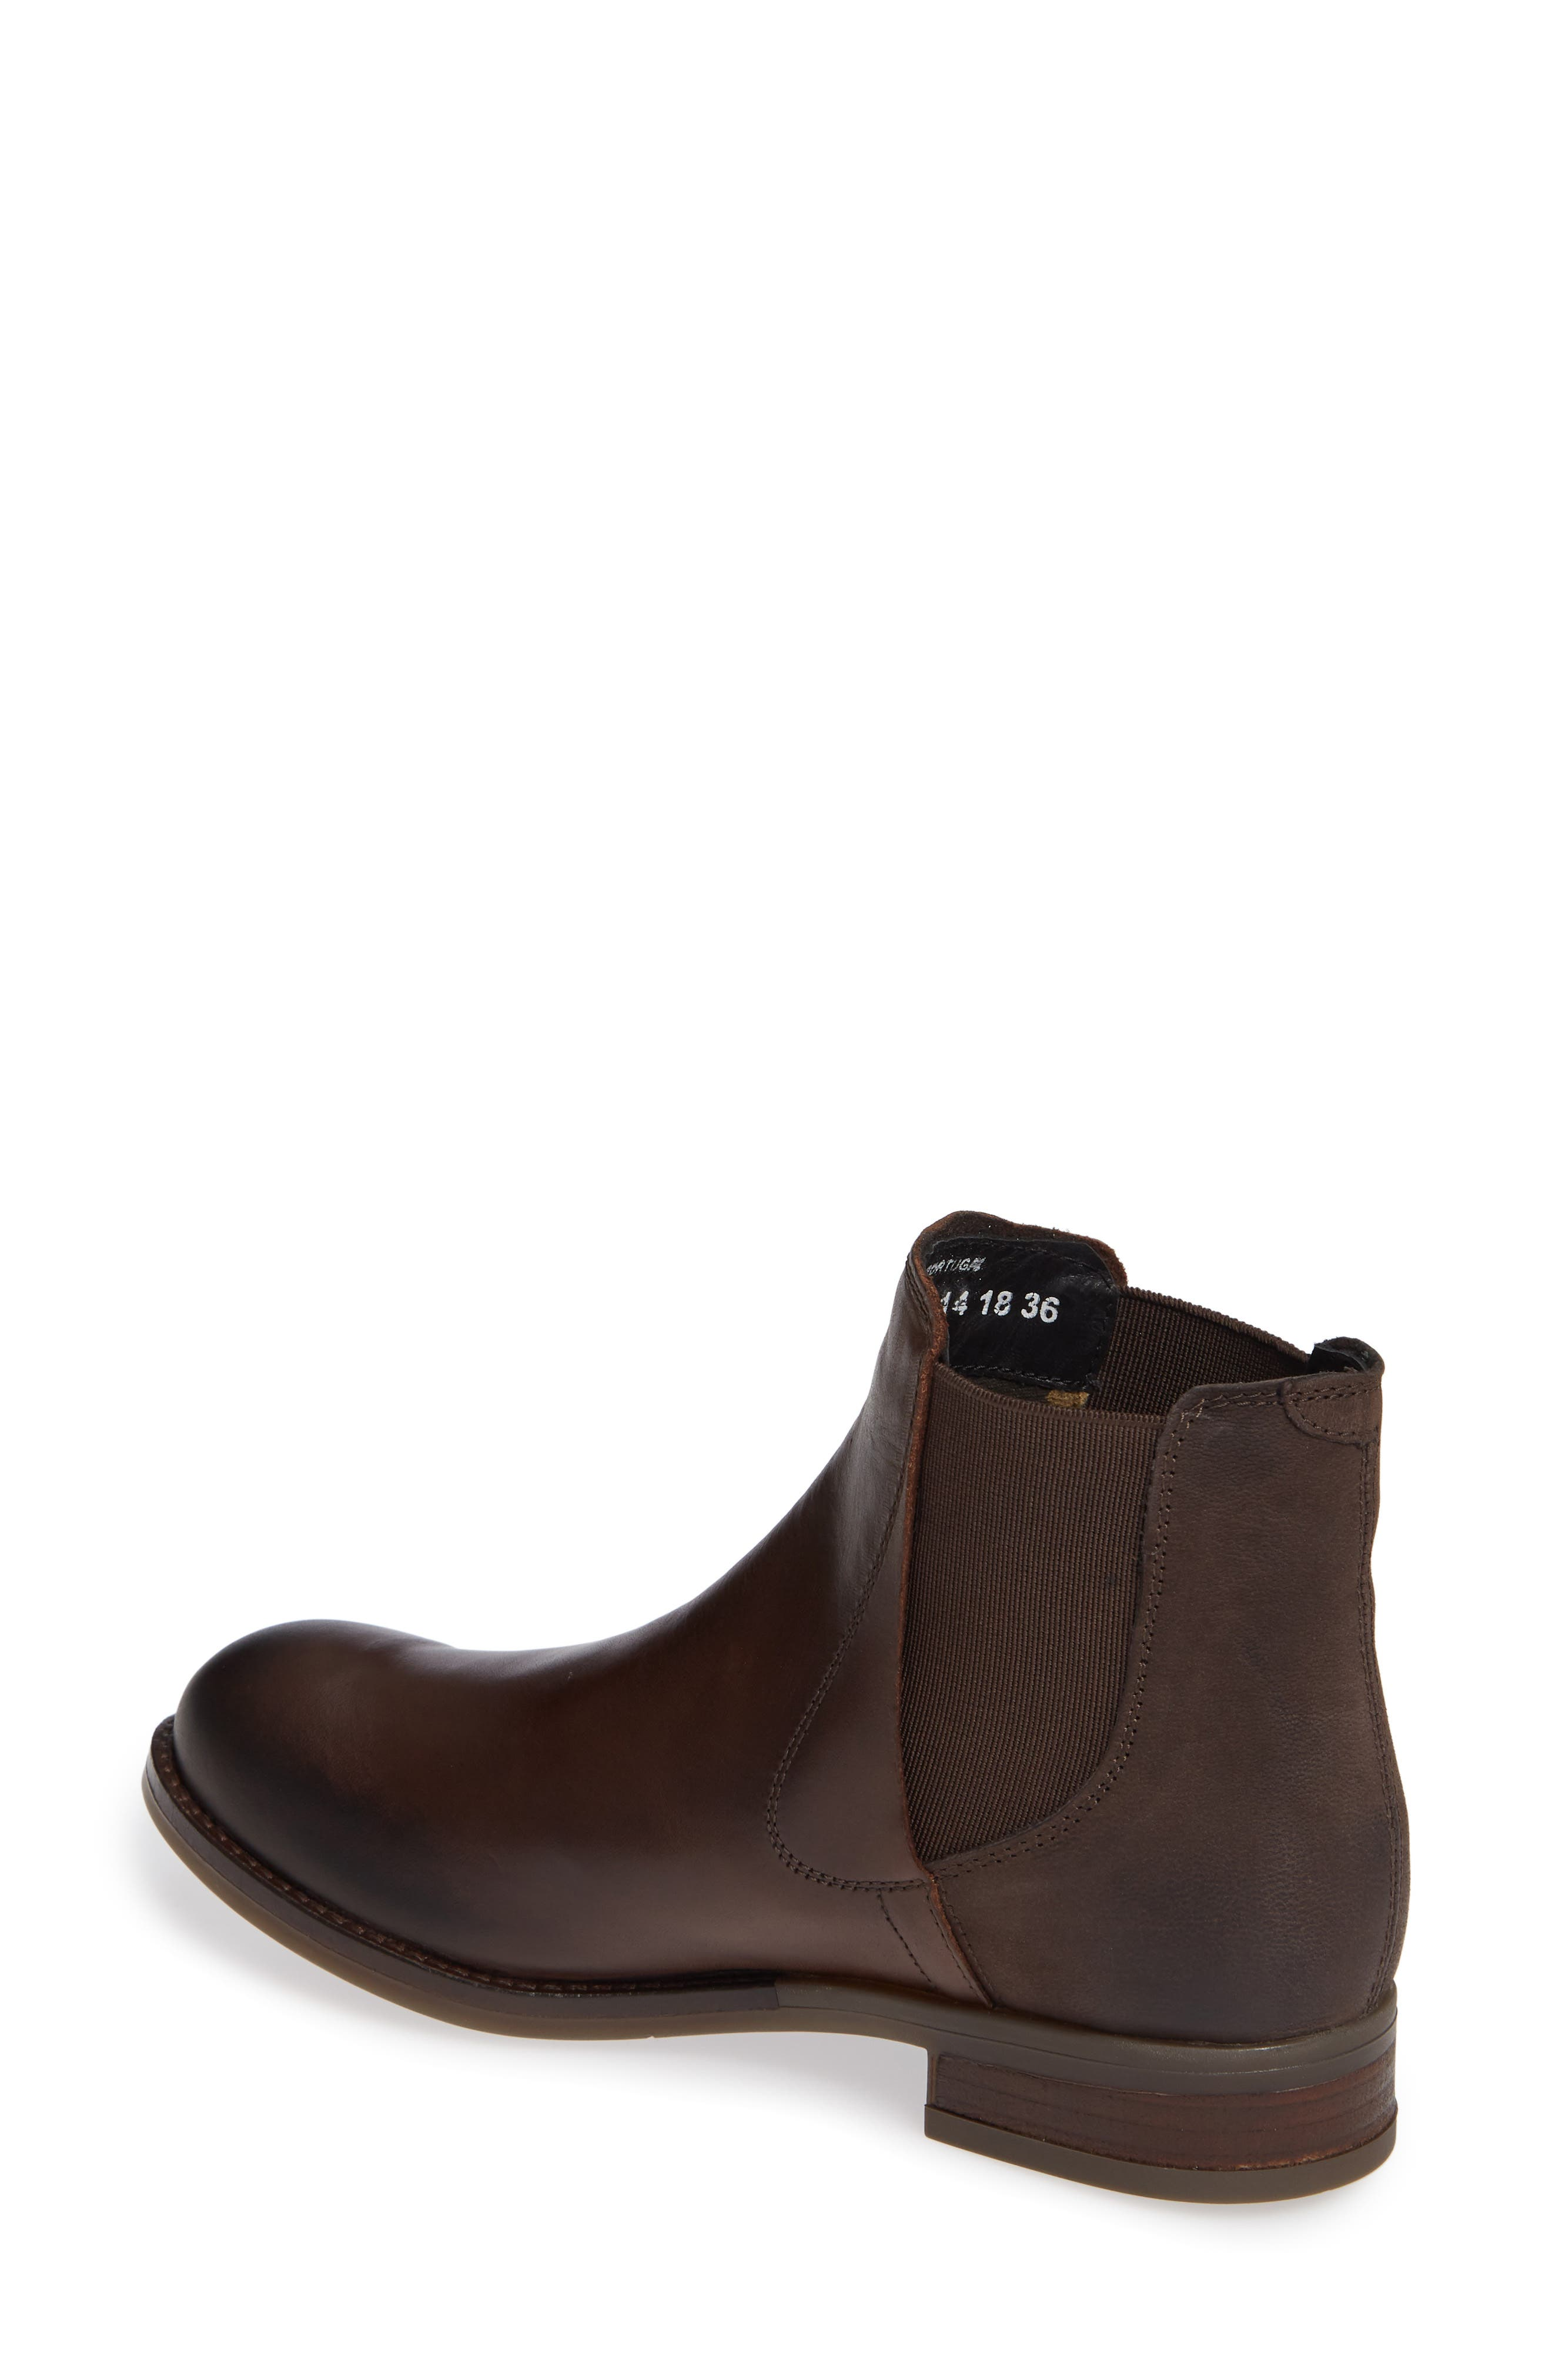 Alls Chelsea Bootie,                             Alternate thumbnail 2, color,                             DARK BROWN LEATHER